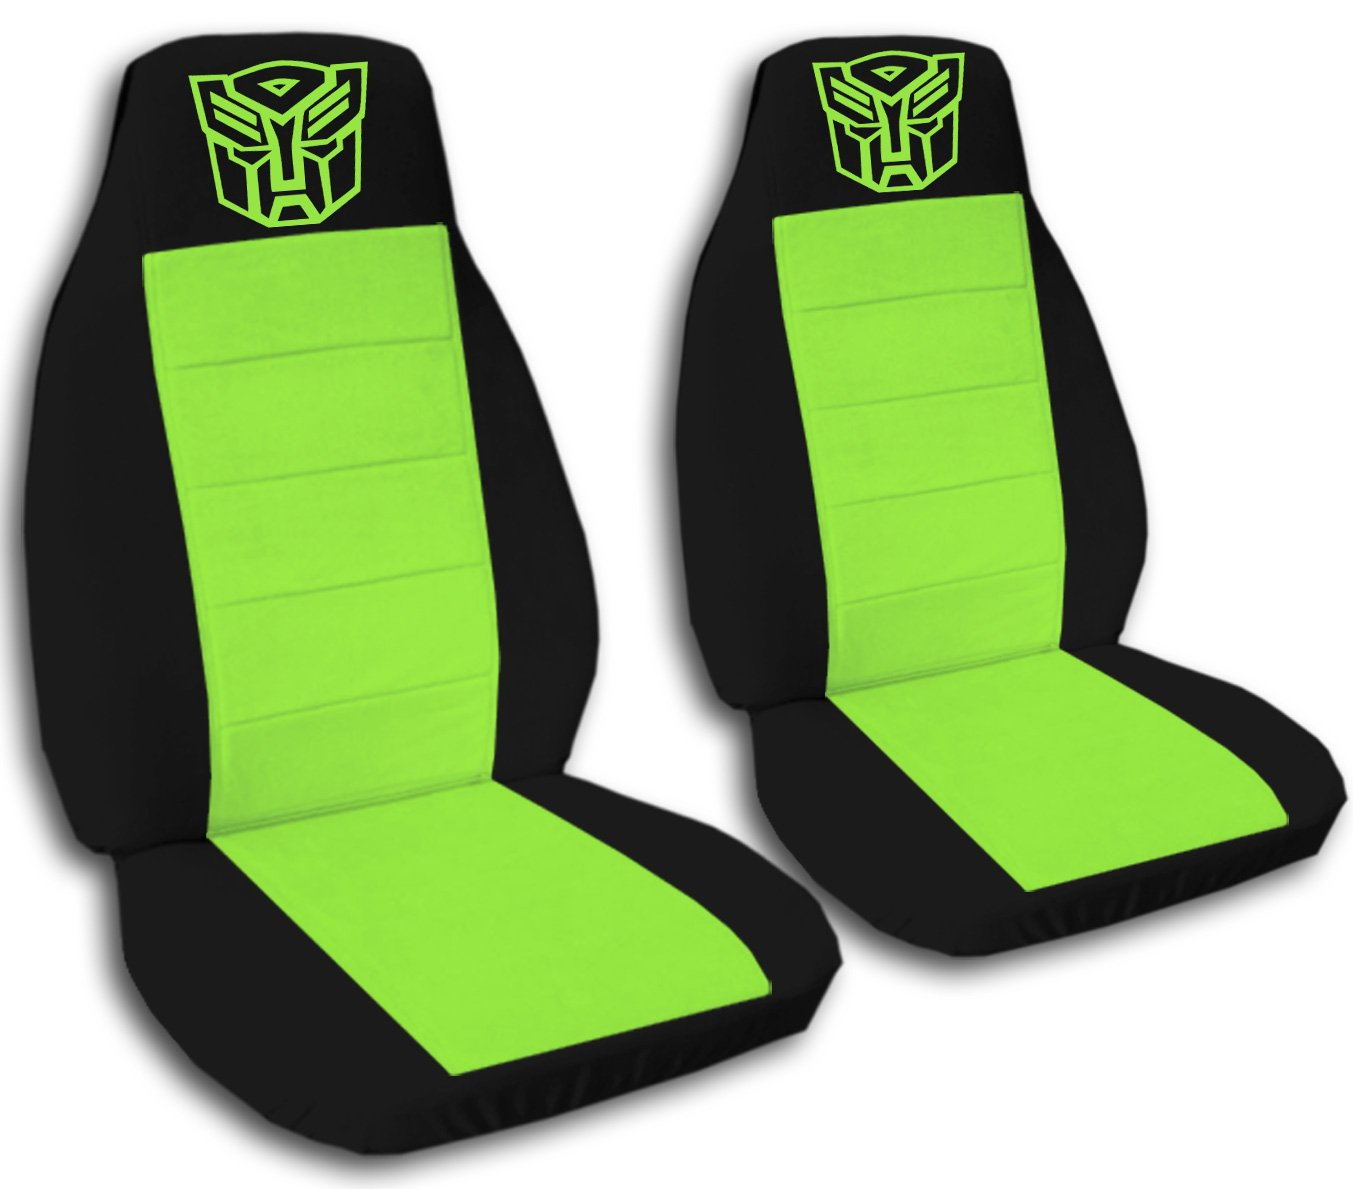 2 Black and Lime Green Robot seat covers for a 2005 to 2010 Jeep Grand Cherokee. ботинки лыжные madshus metis u 2012 13